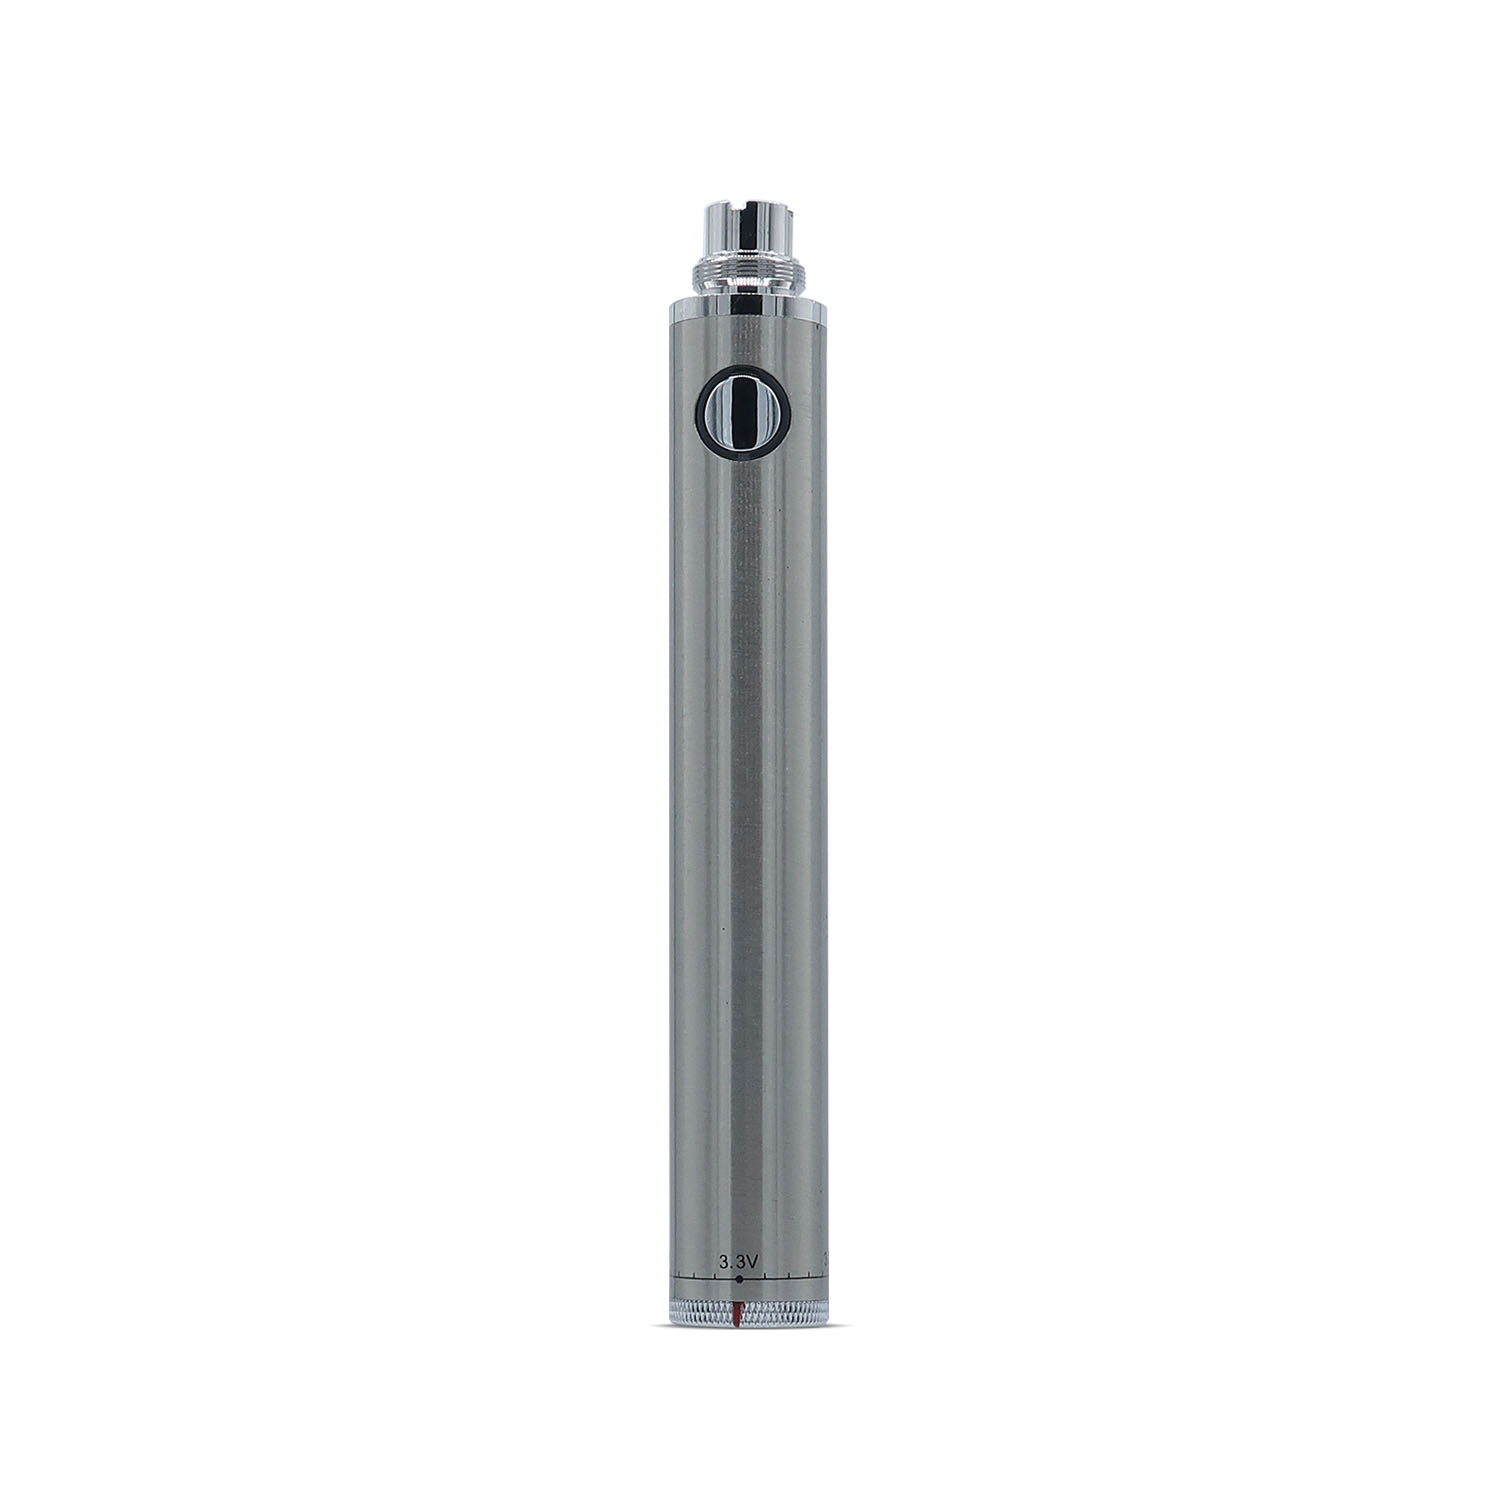 1300 mAh Variable Voltage Large Capacity Vape Battery